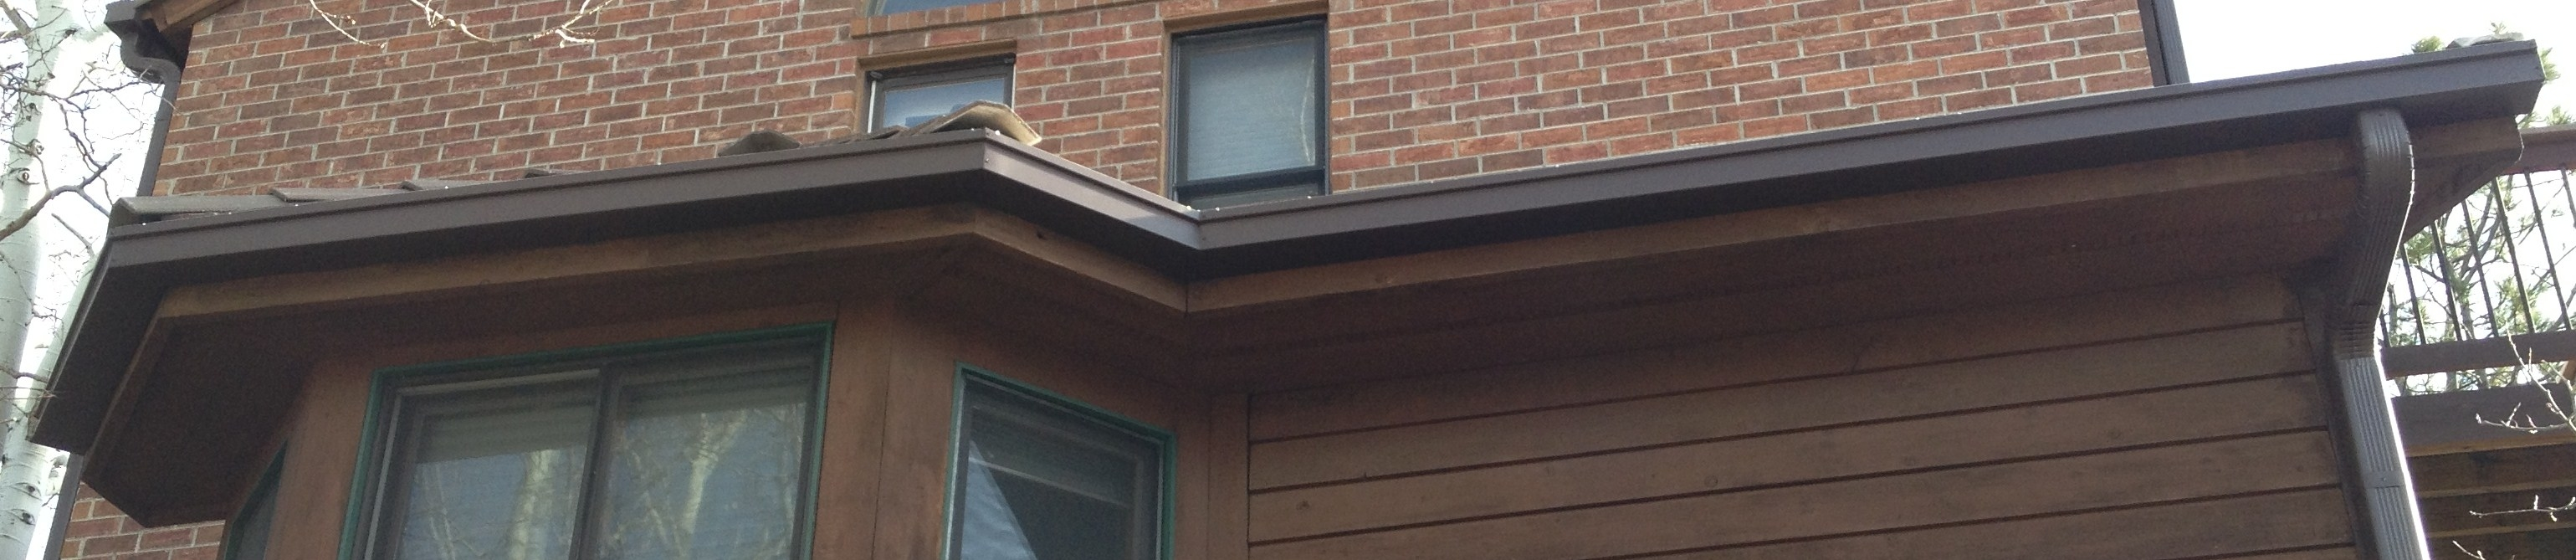 Precision Seamless Gutters image 4